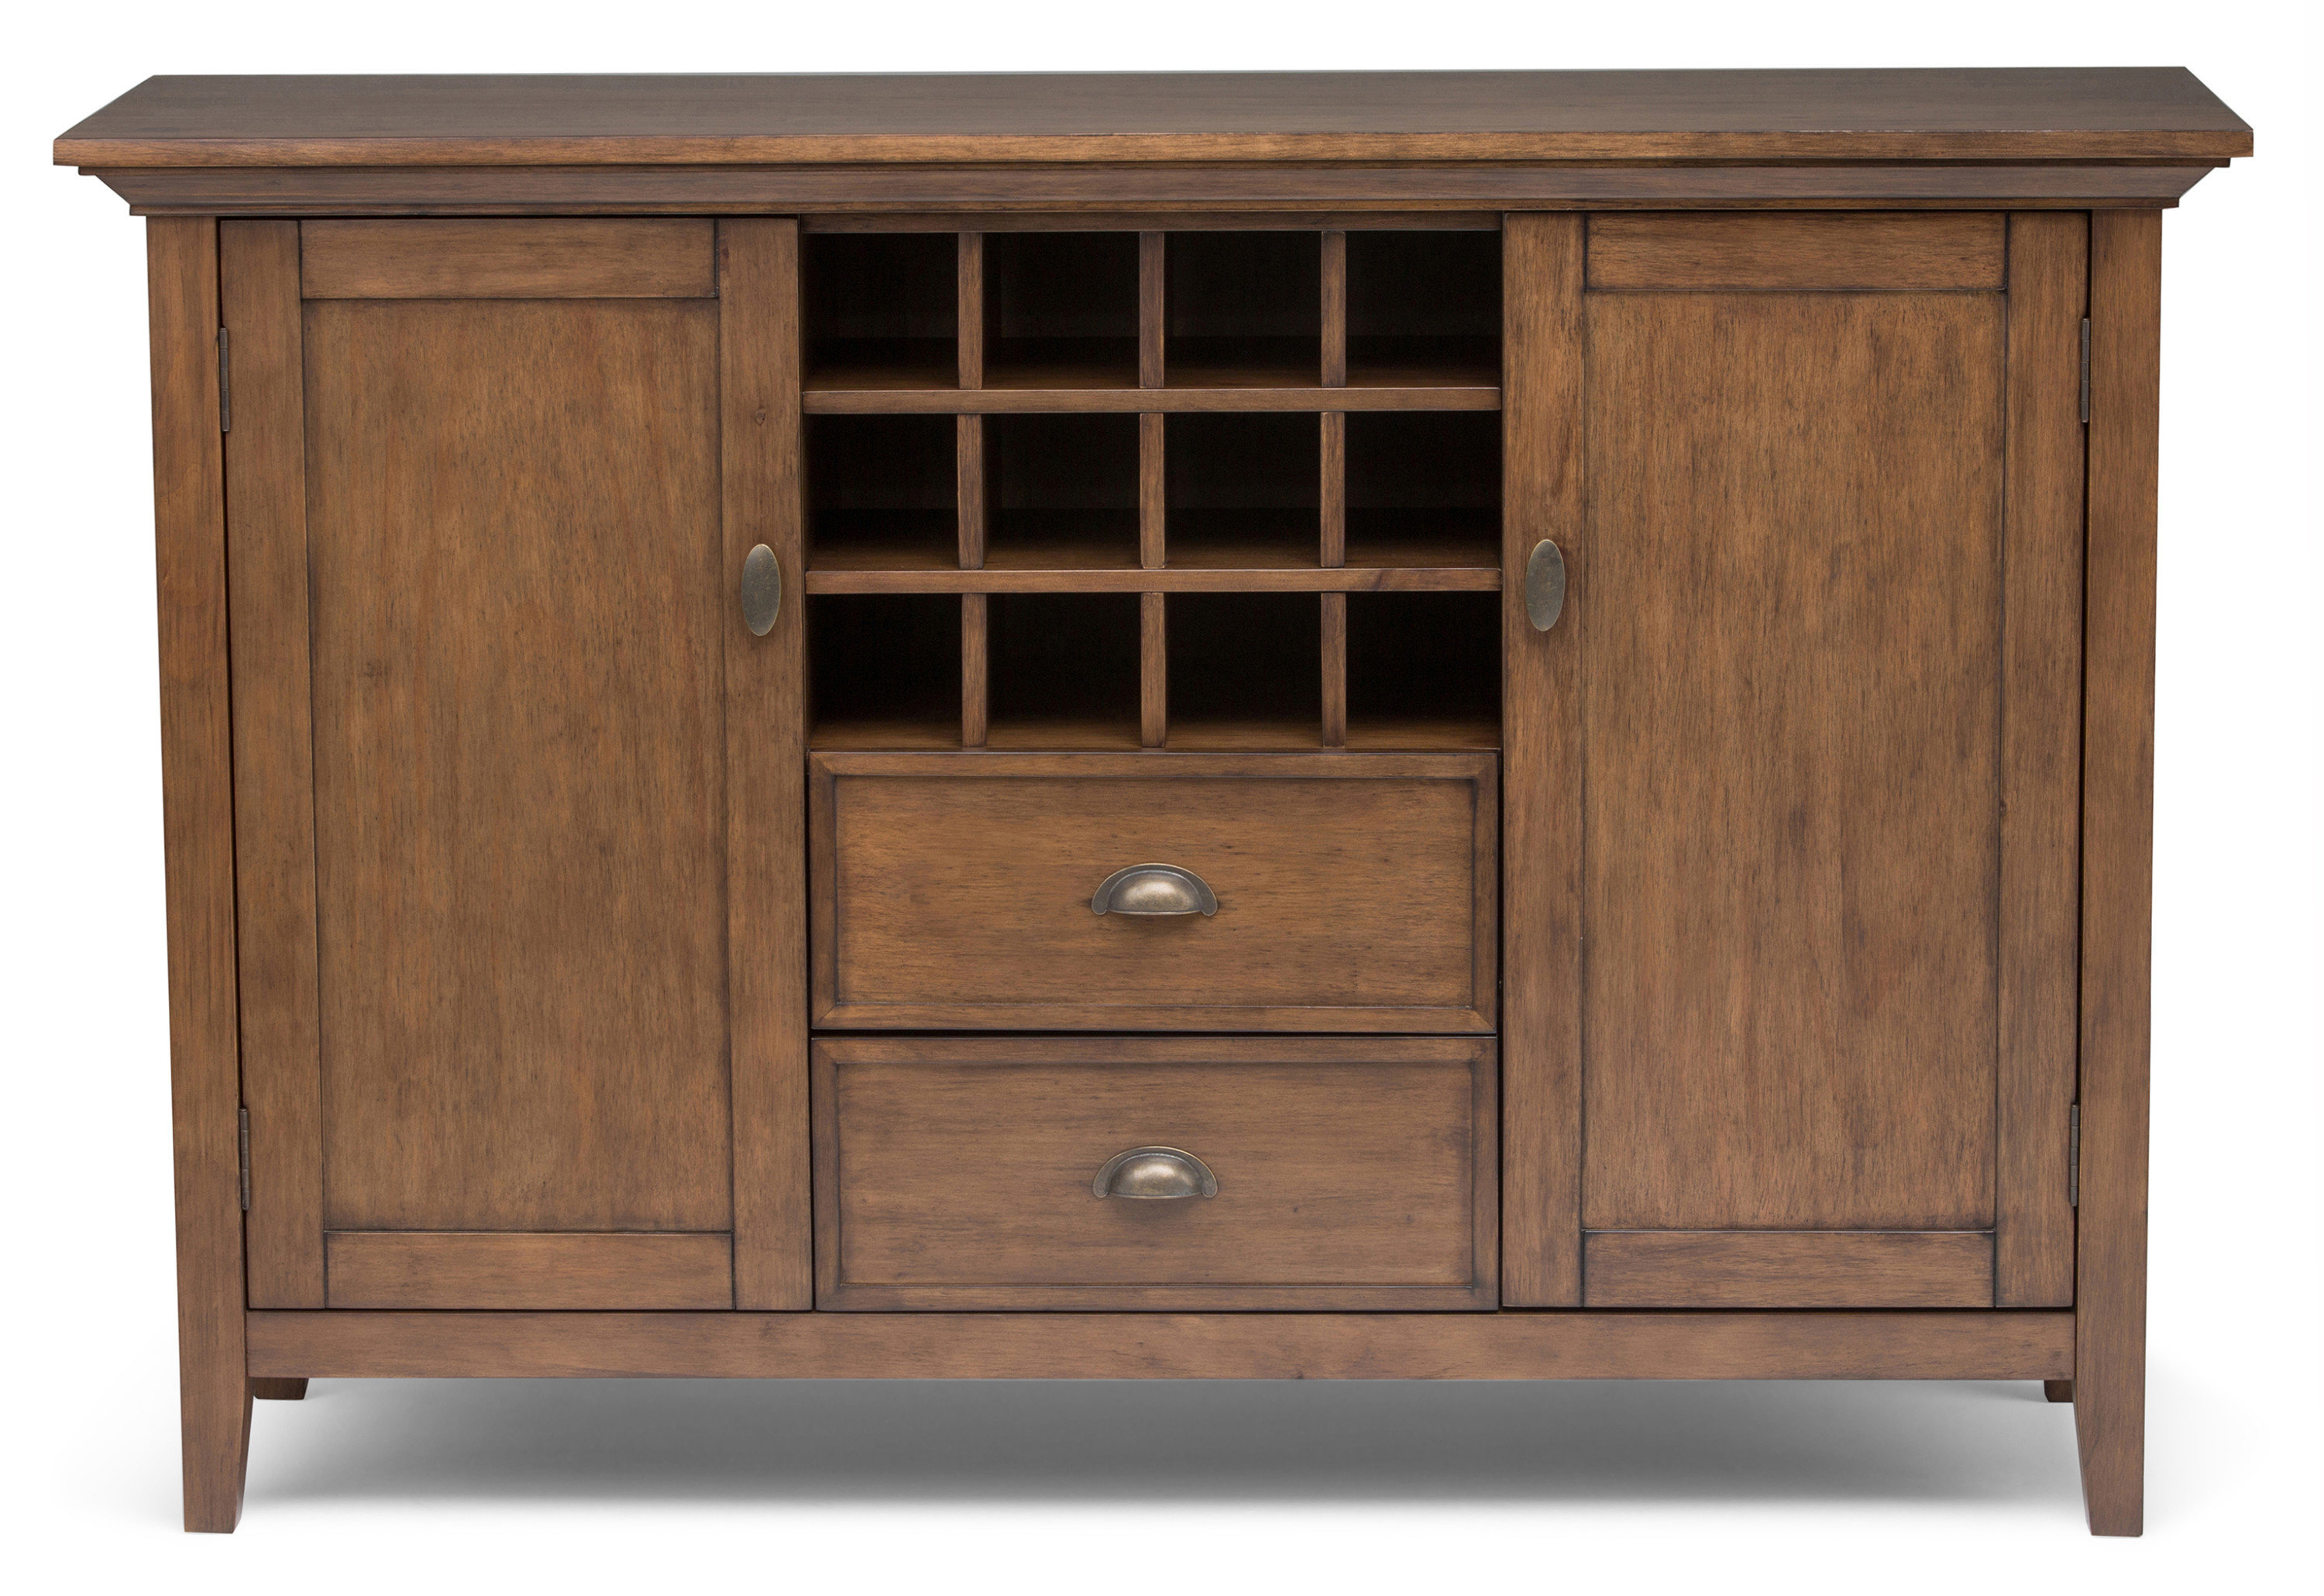 Tilman Sideboards Intended For Most Current Amatury Sideboard (View 15 of 20)